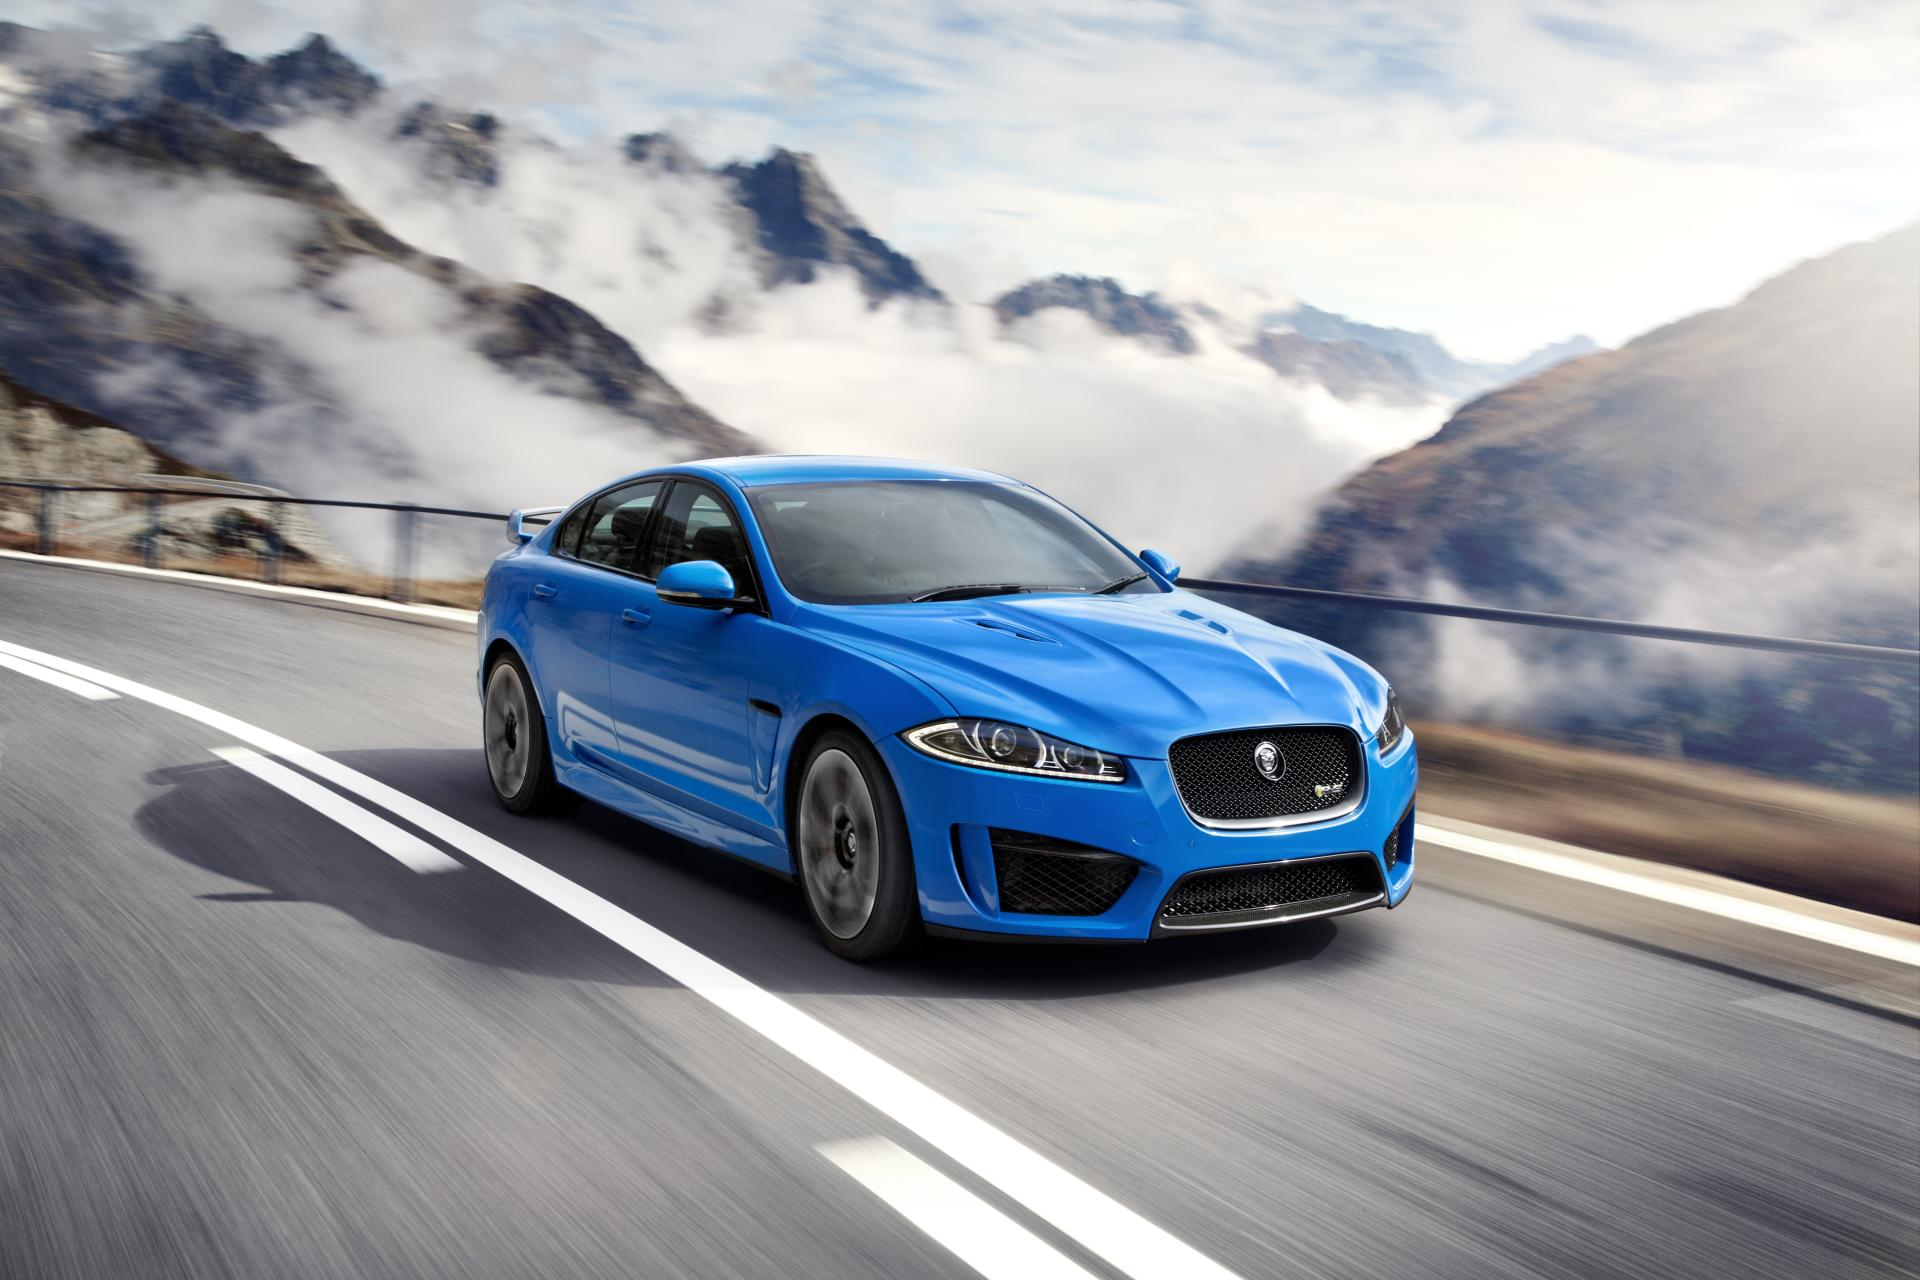 Jaguar XFR S information image HD Free Picture Download Image Of